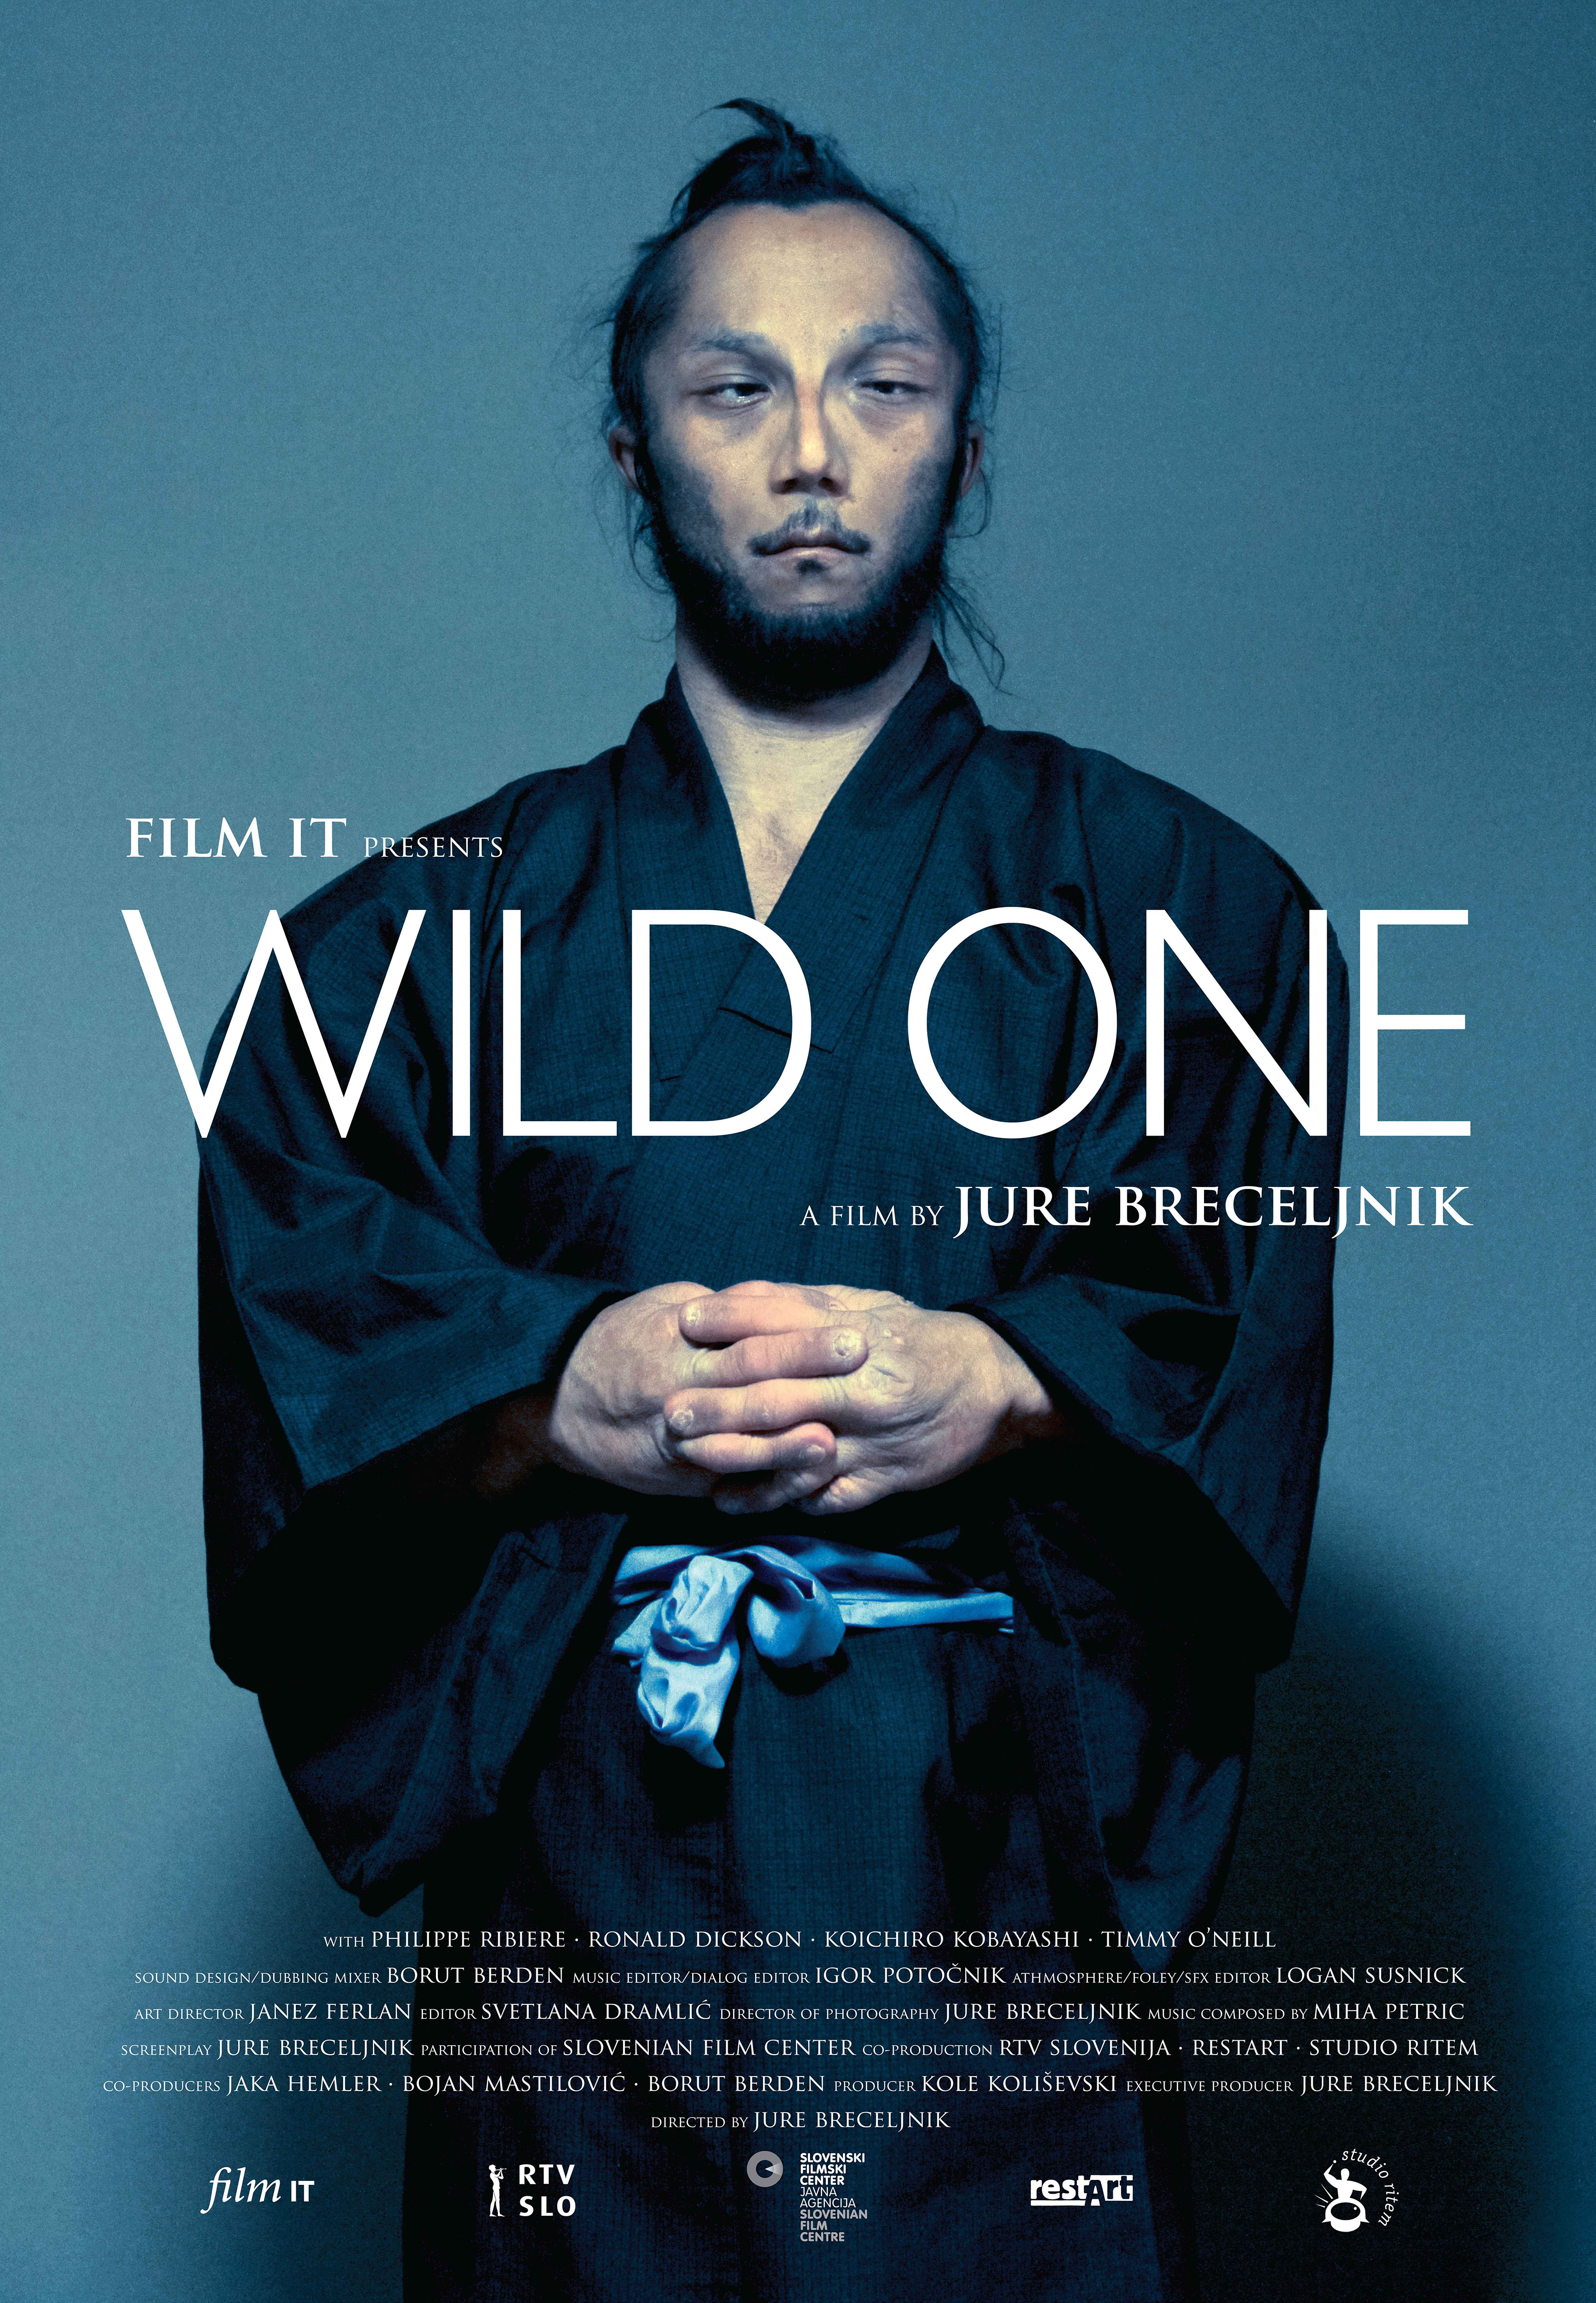 WILD ONE_Poster680x980_curves